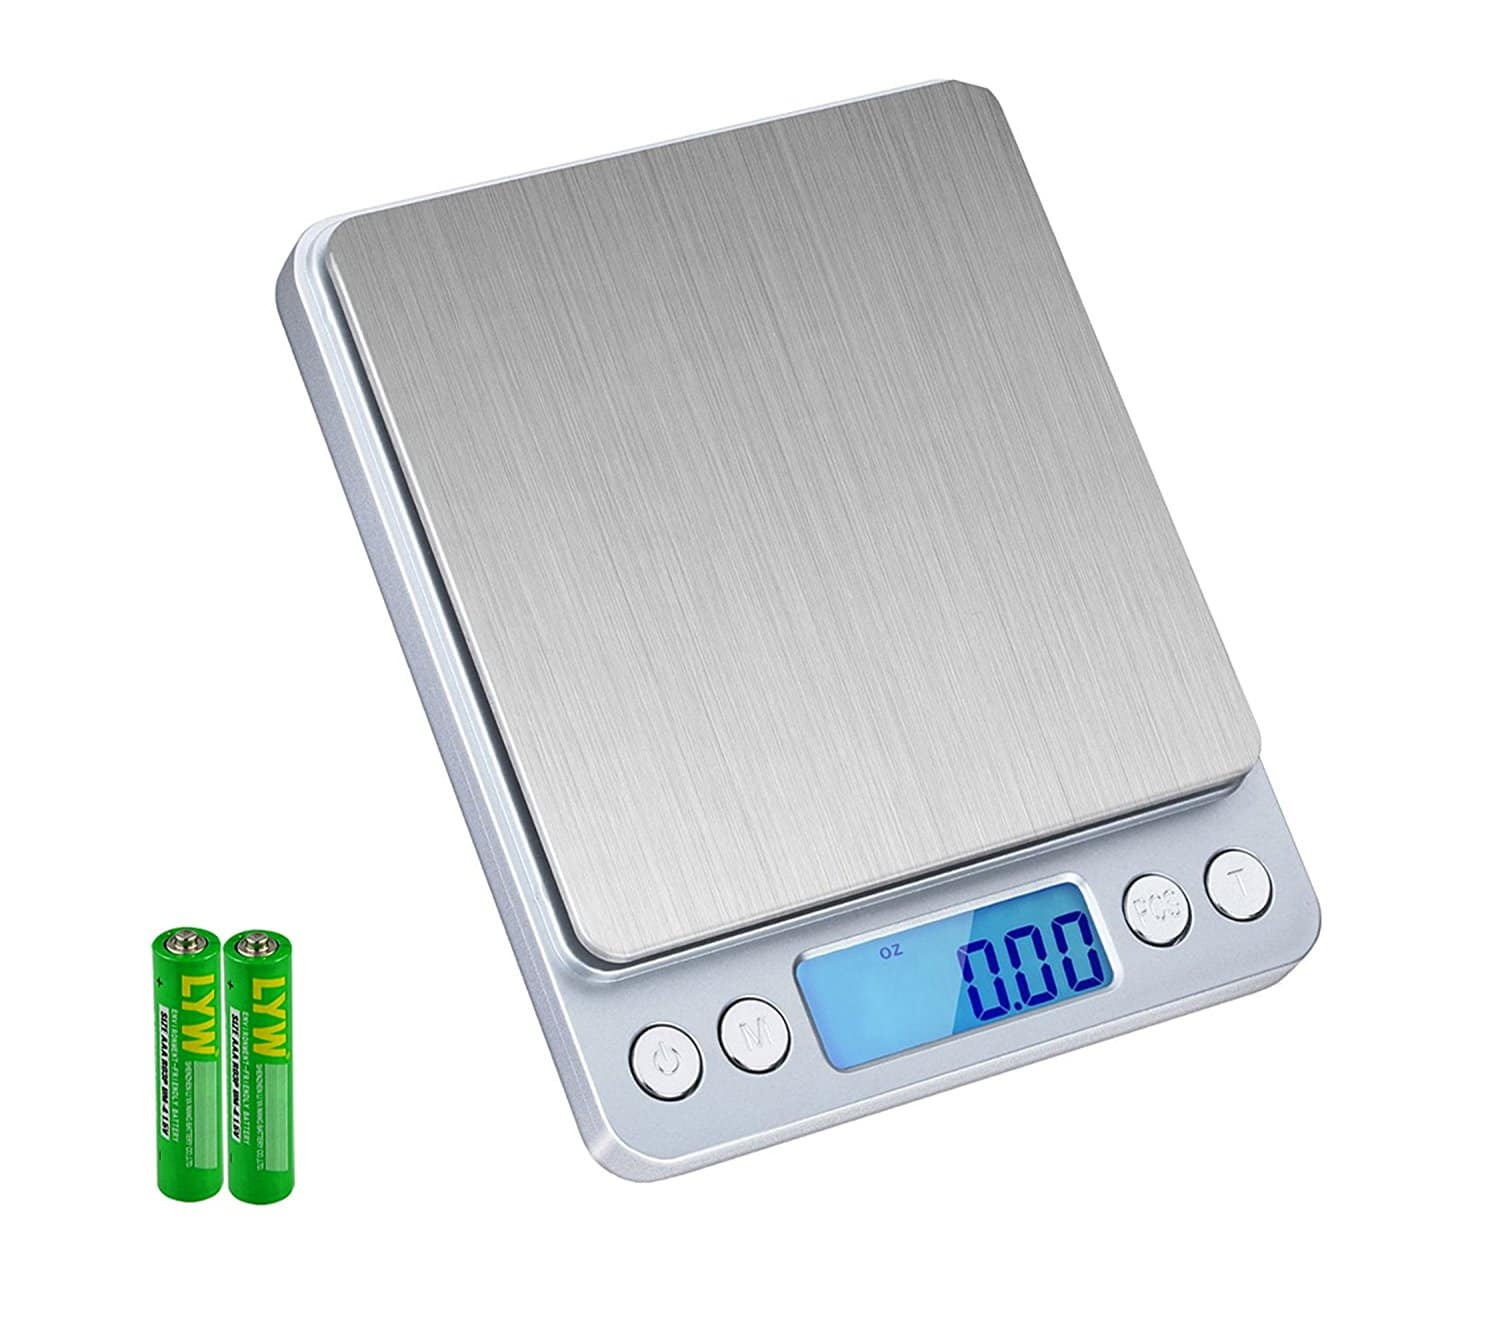 SKYROKU High-precision Digital Food Scale Multifunction Pocket Kitchen Scale with LCD Display 6lb/3kg (Batteries Included) for $7.99